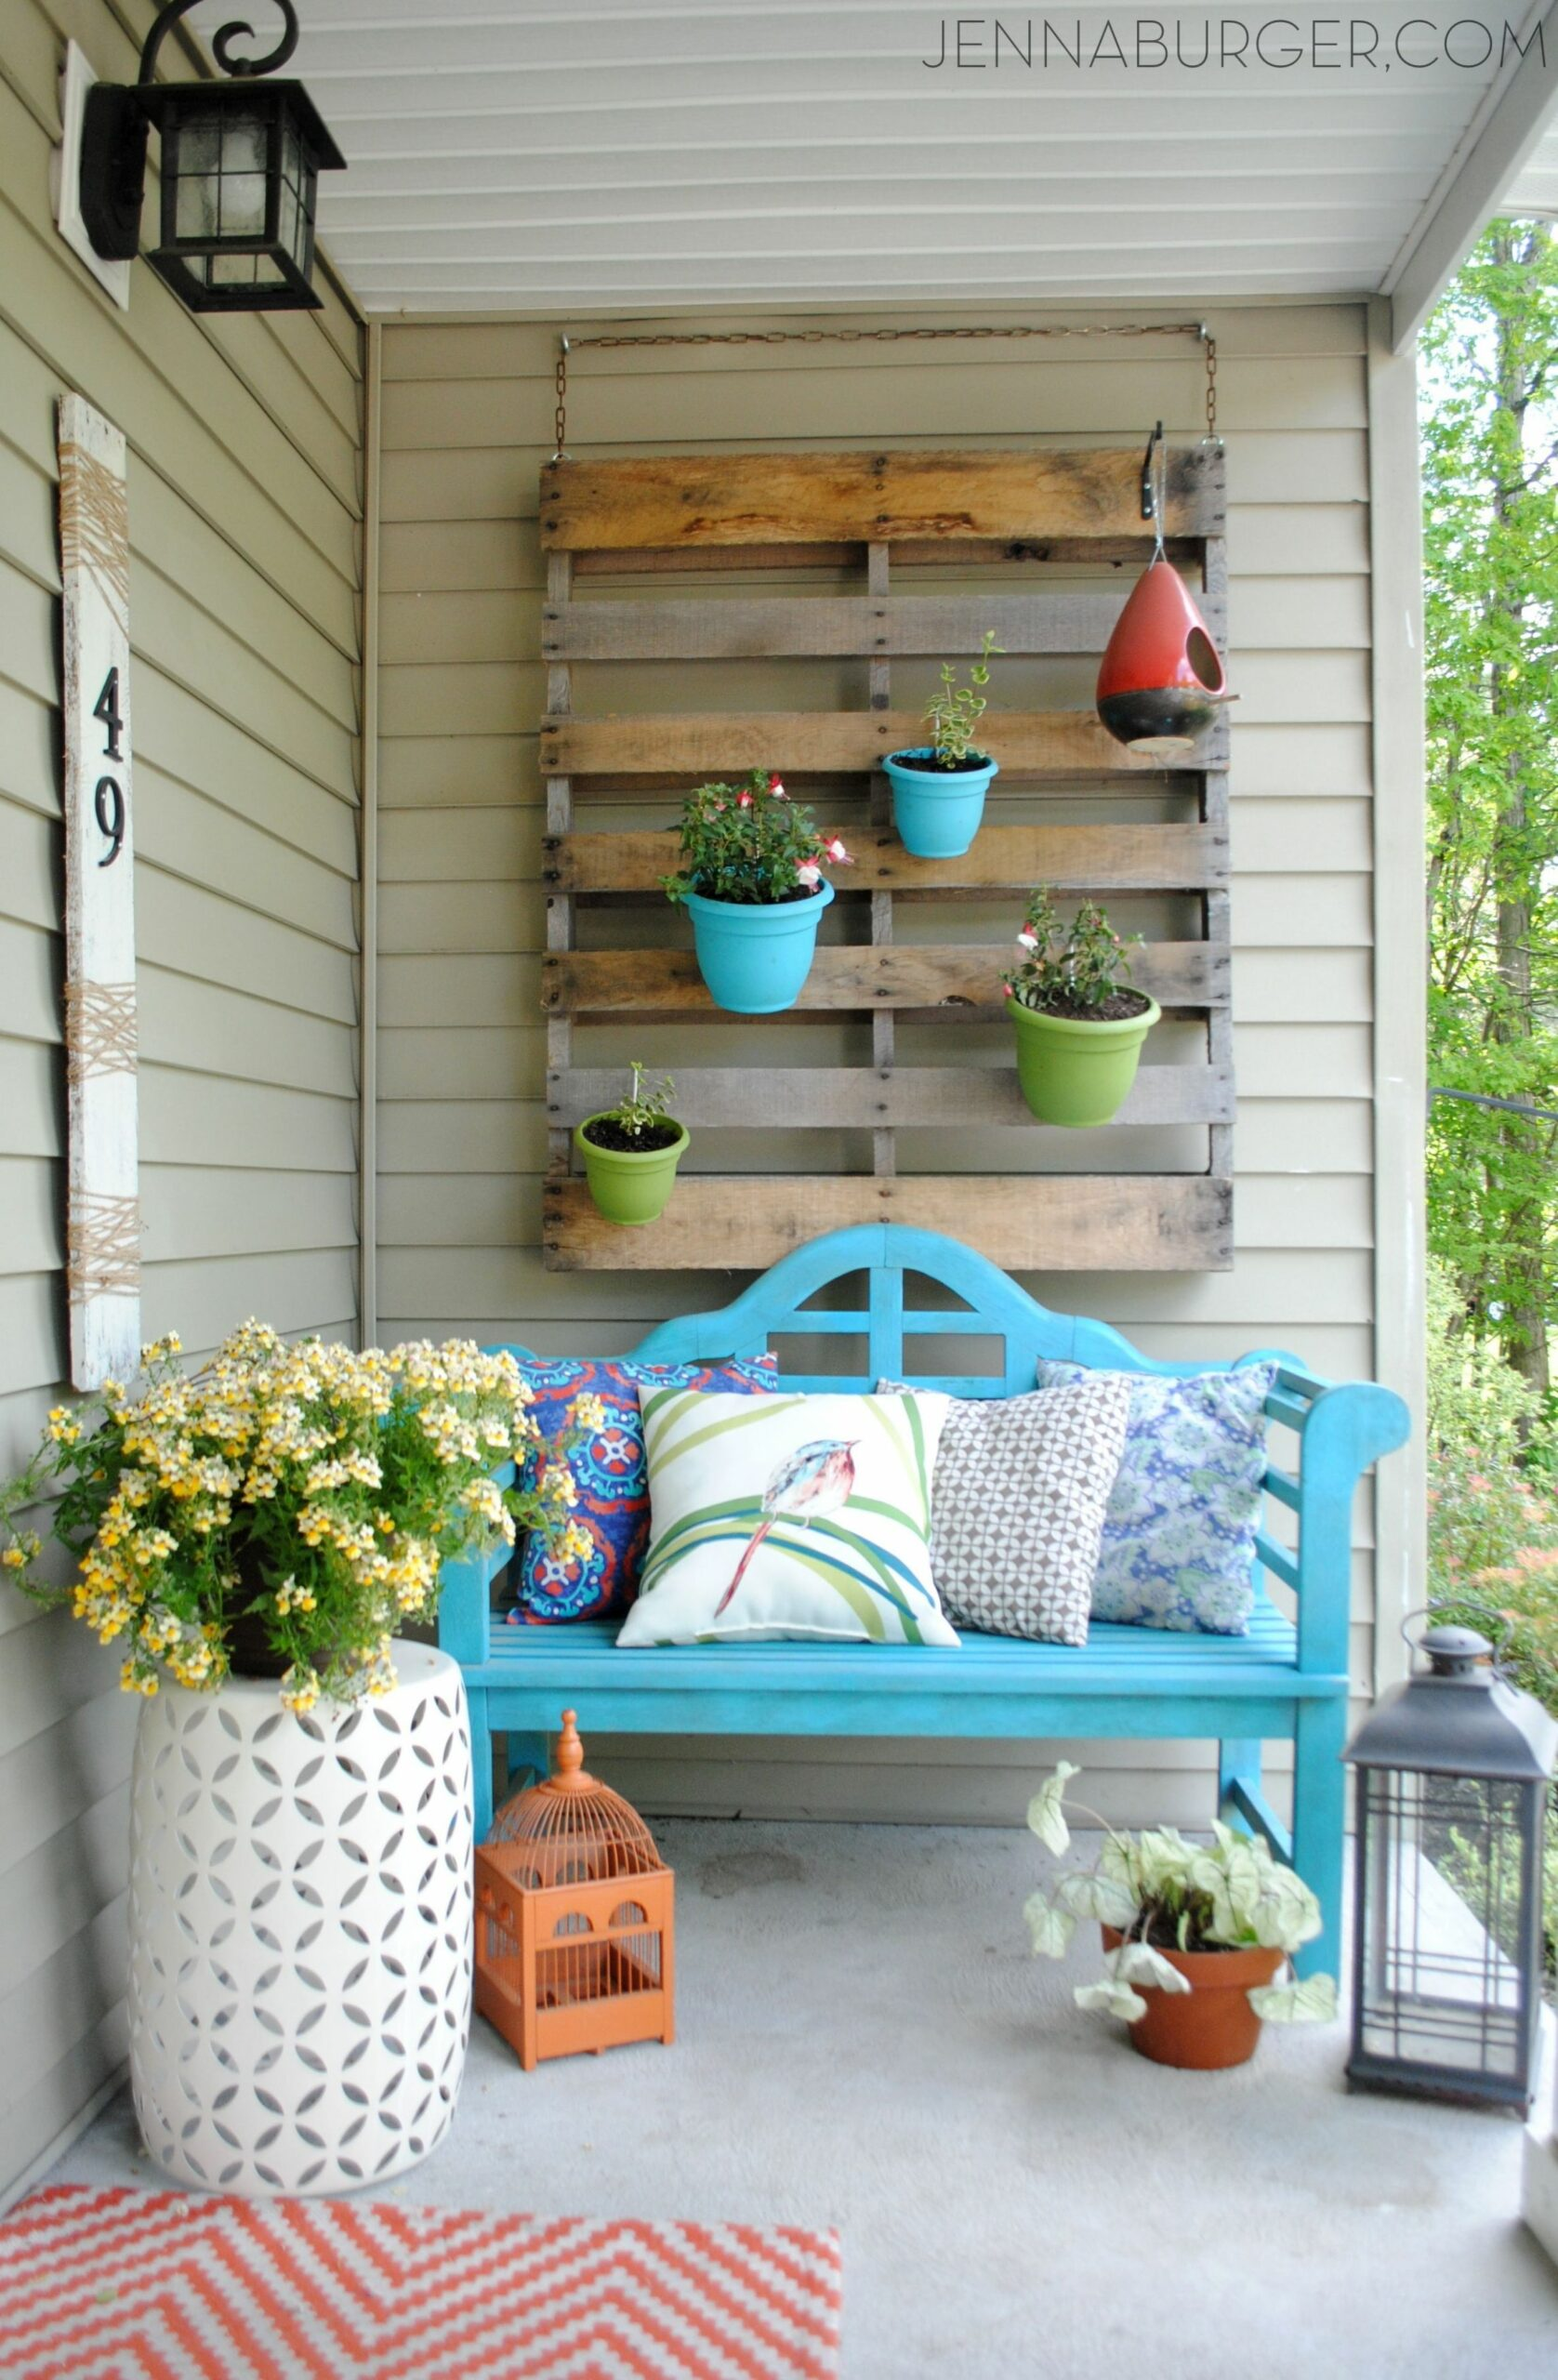 Spring + Summer Front Porch | Porch wall decor, Small front porches